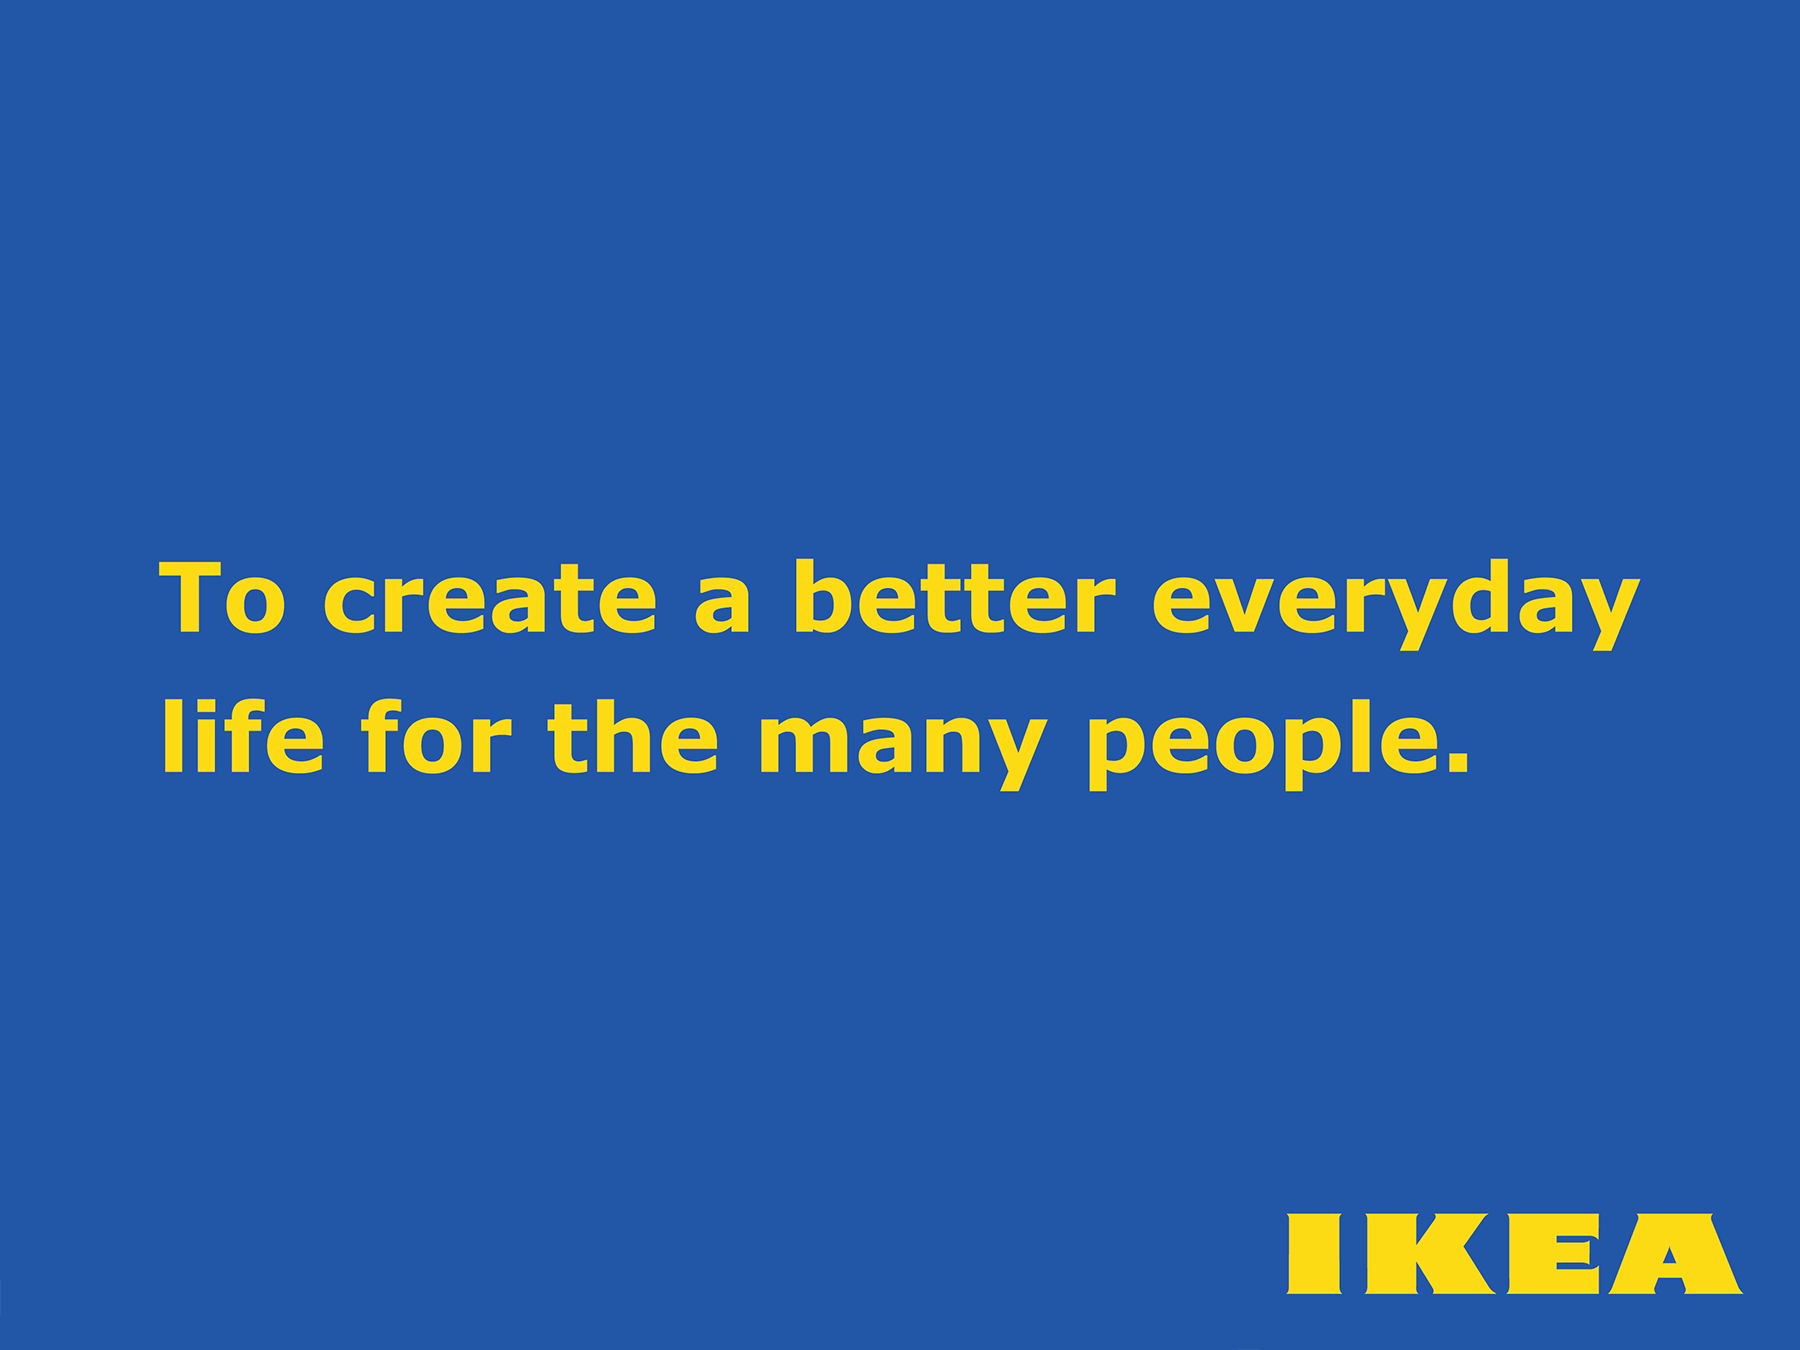 IKEA brand promise - everything IKEA does is consistent with its brand promise.  This builds trust.